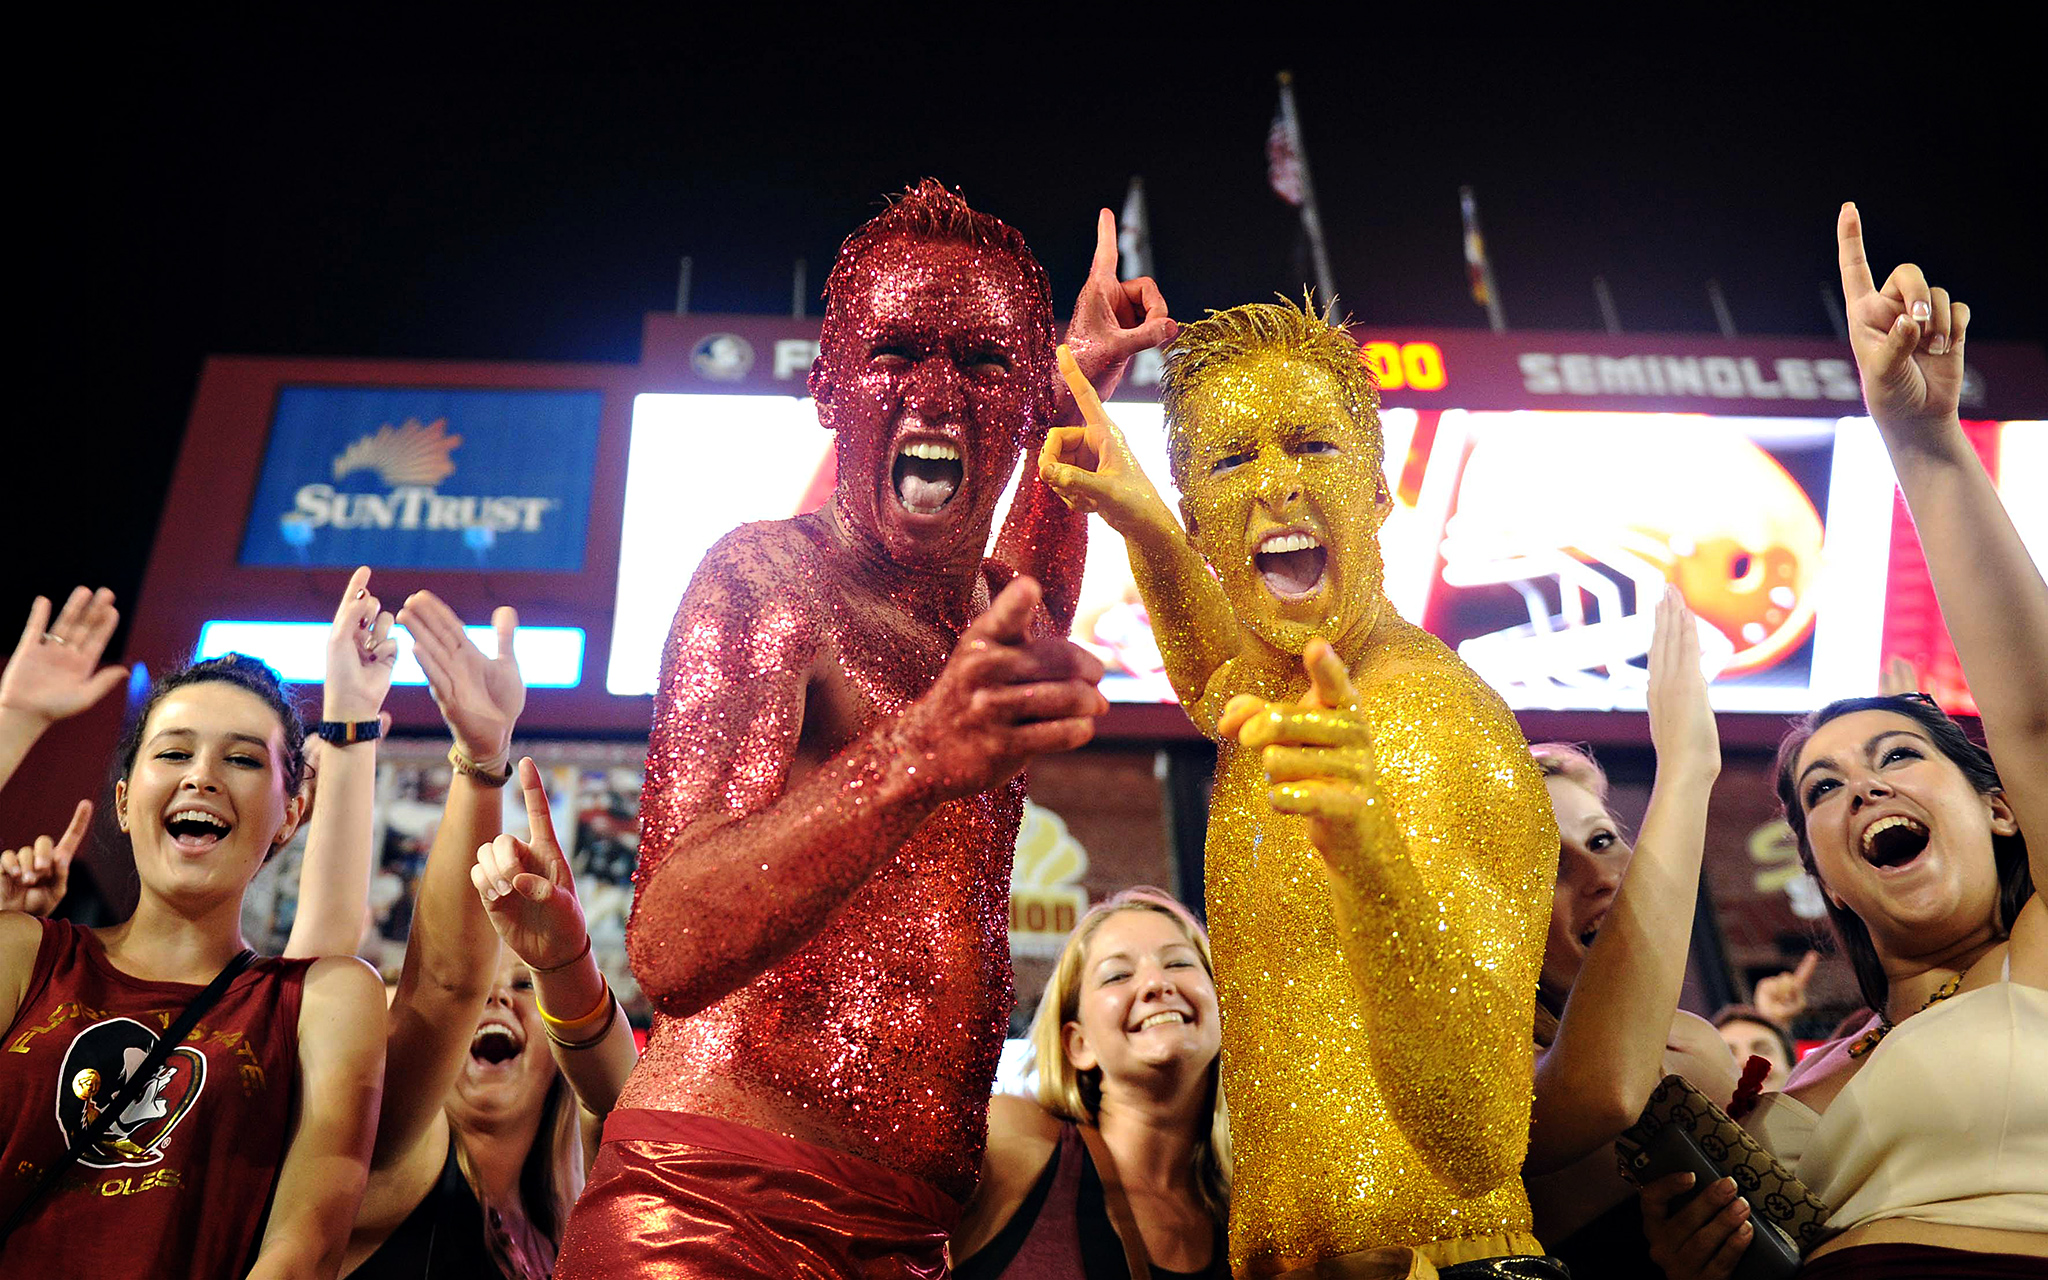 Garnet And Gold Guys - Friday Funnies: College Football Fans - ESPN Fsu Football Stadium